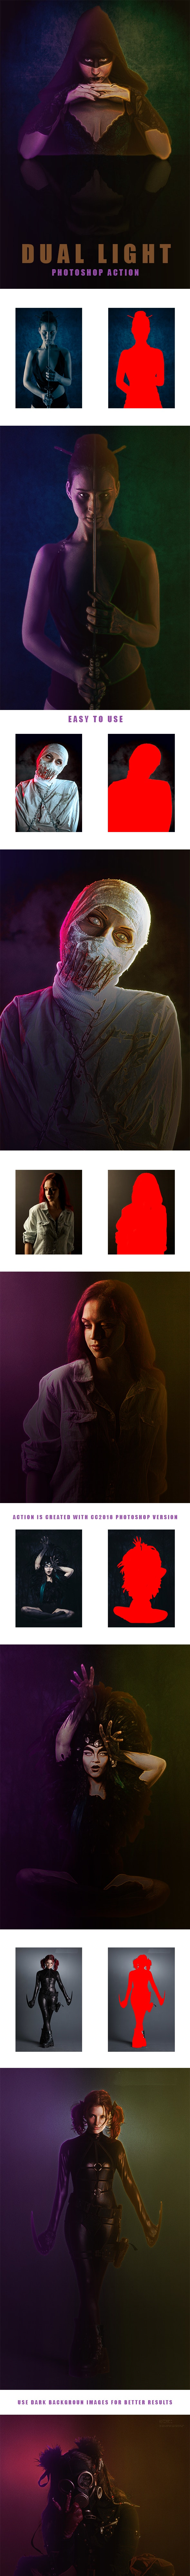 Dual Light - Photoshop Action - Photo Effects Actions